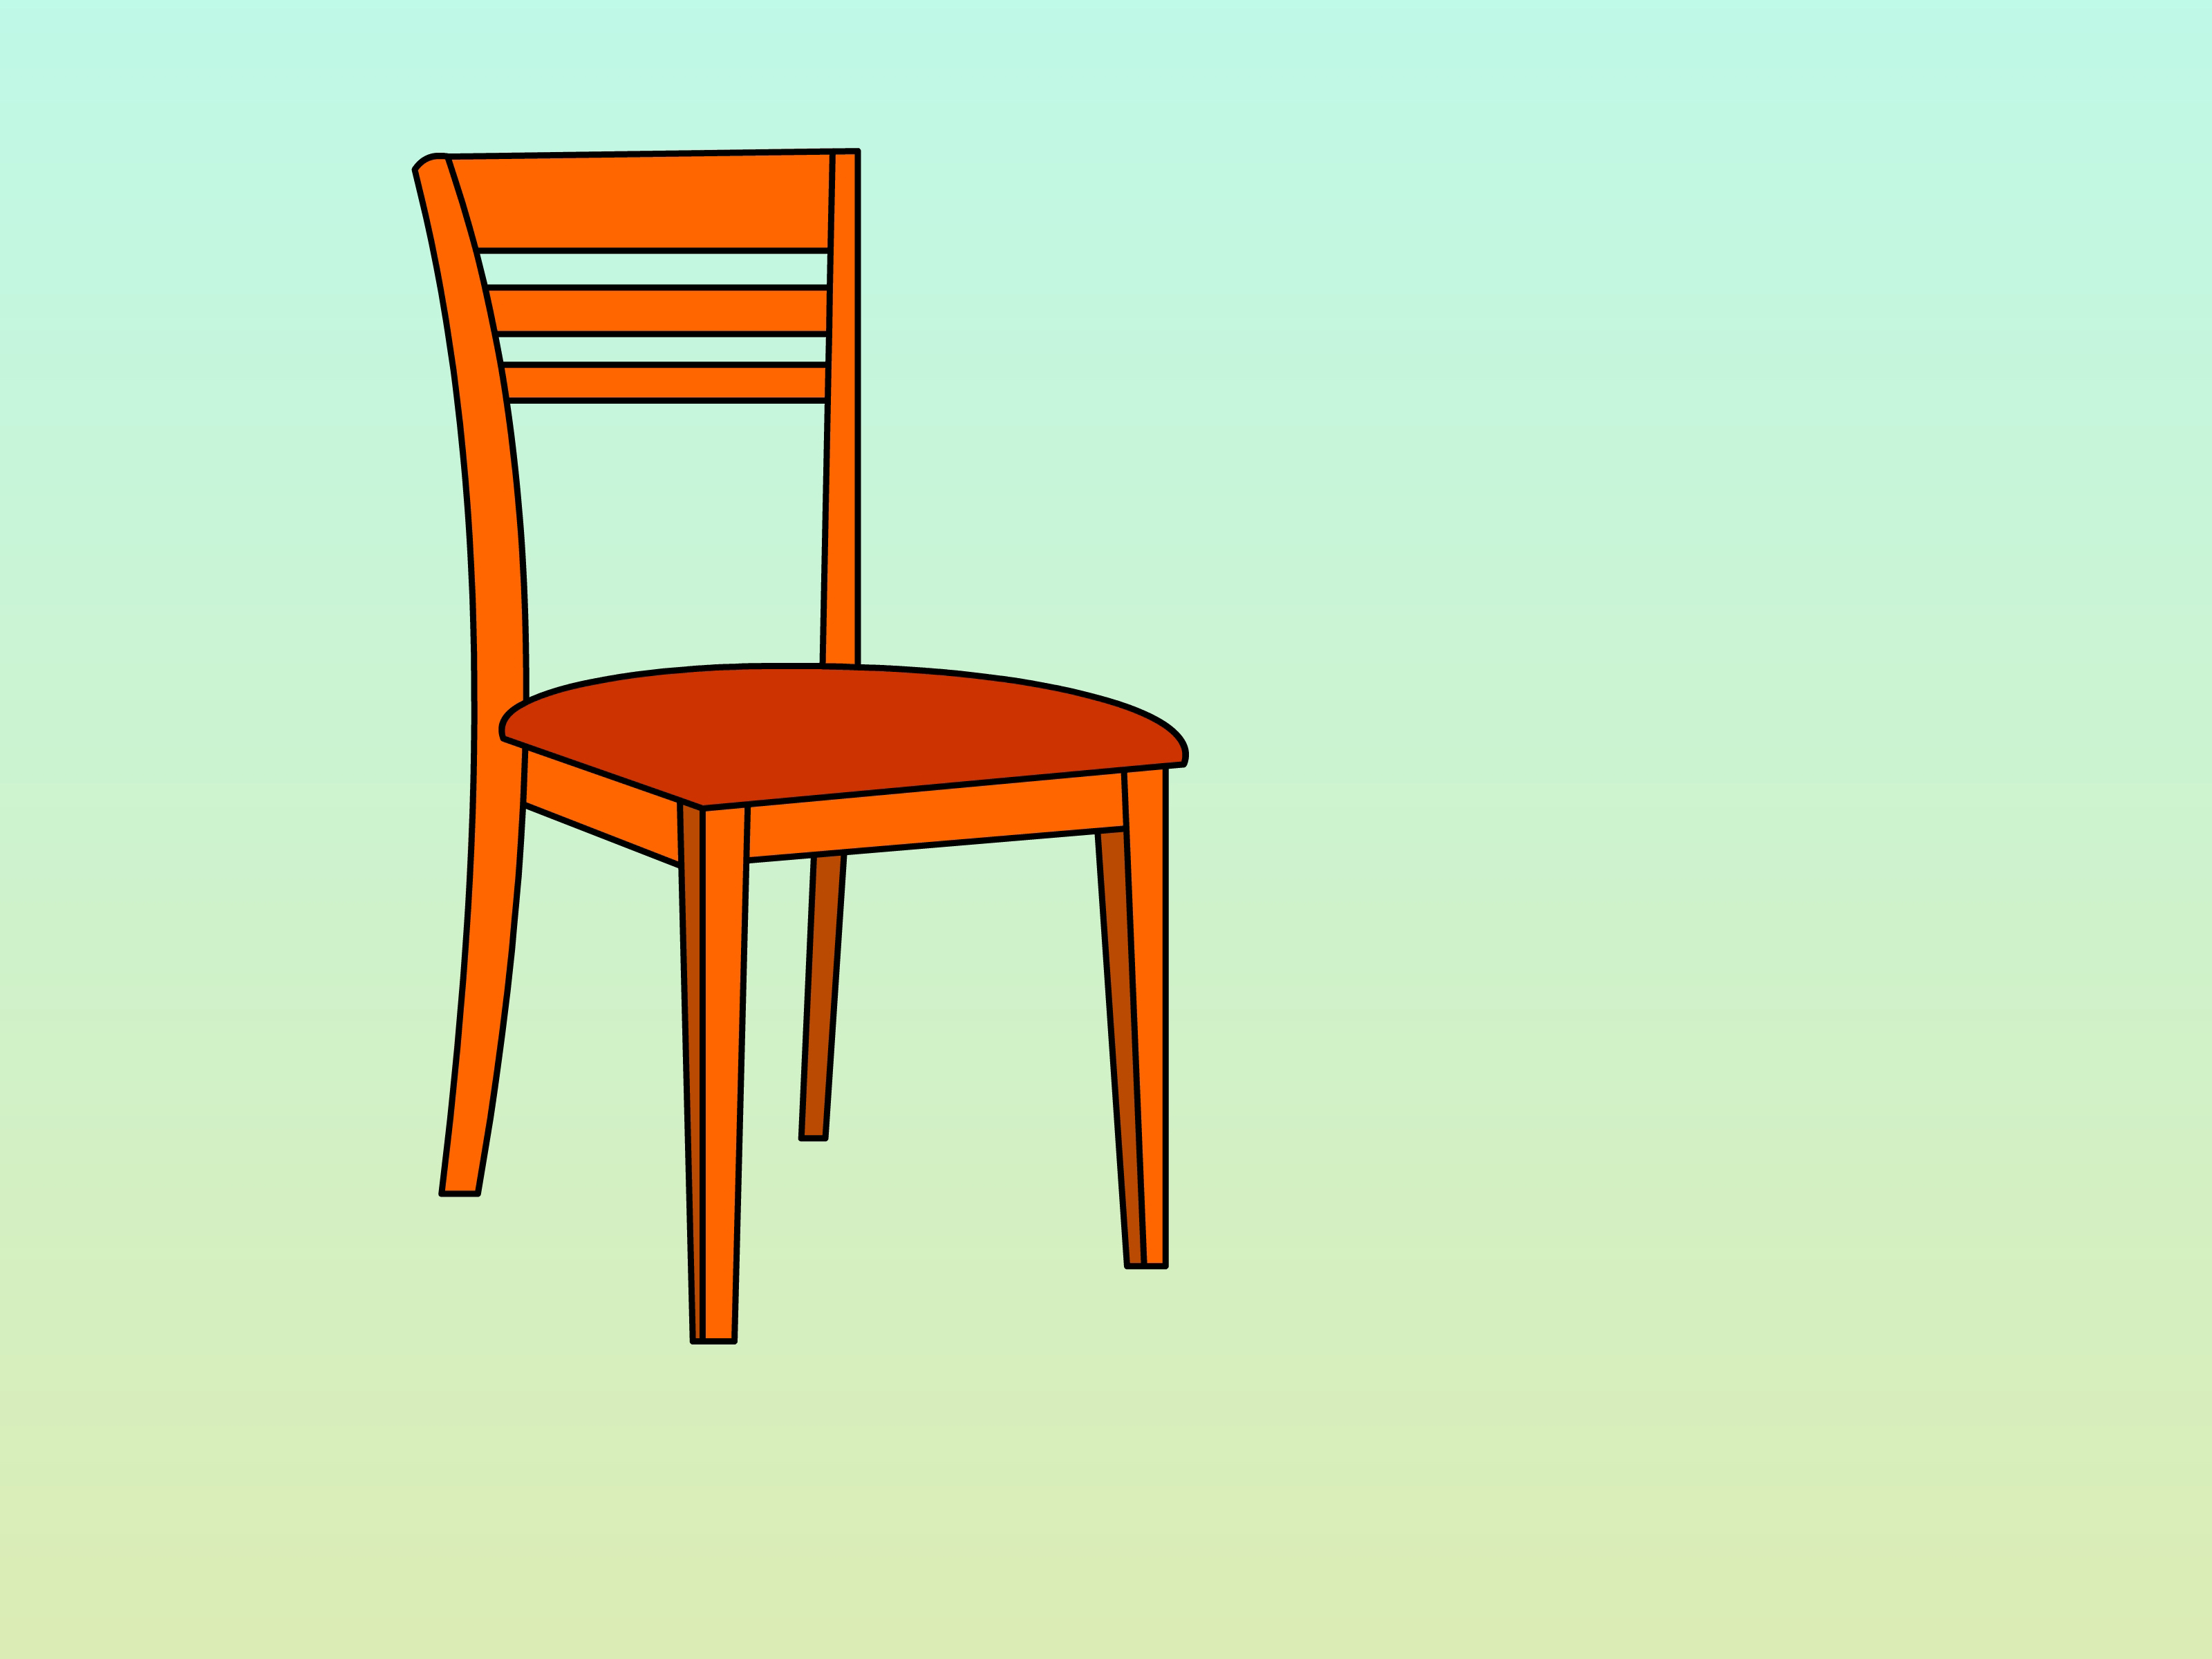 3200x2400 How To Draw A Chair Steps